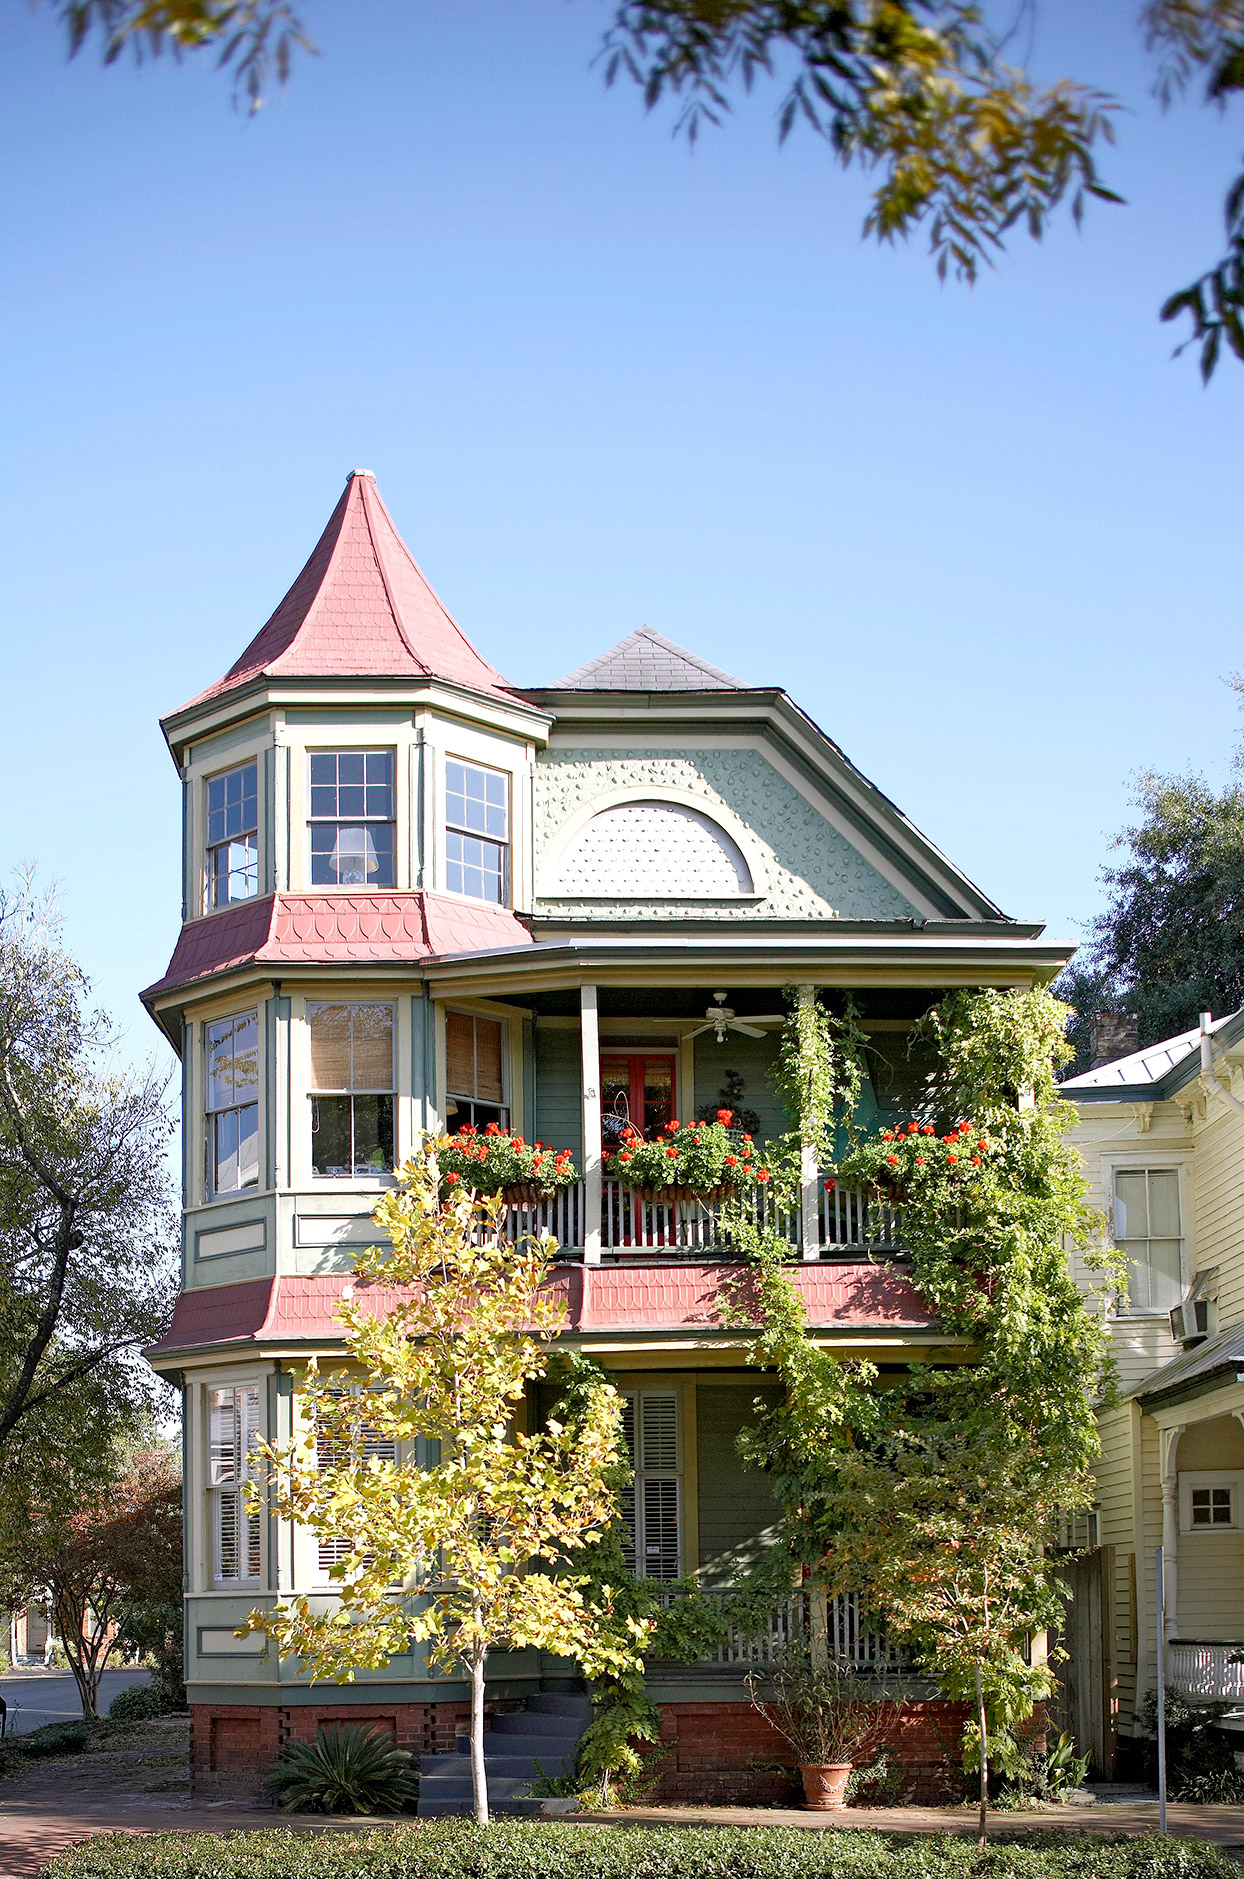 Victorian style home with vines